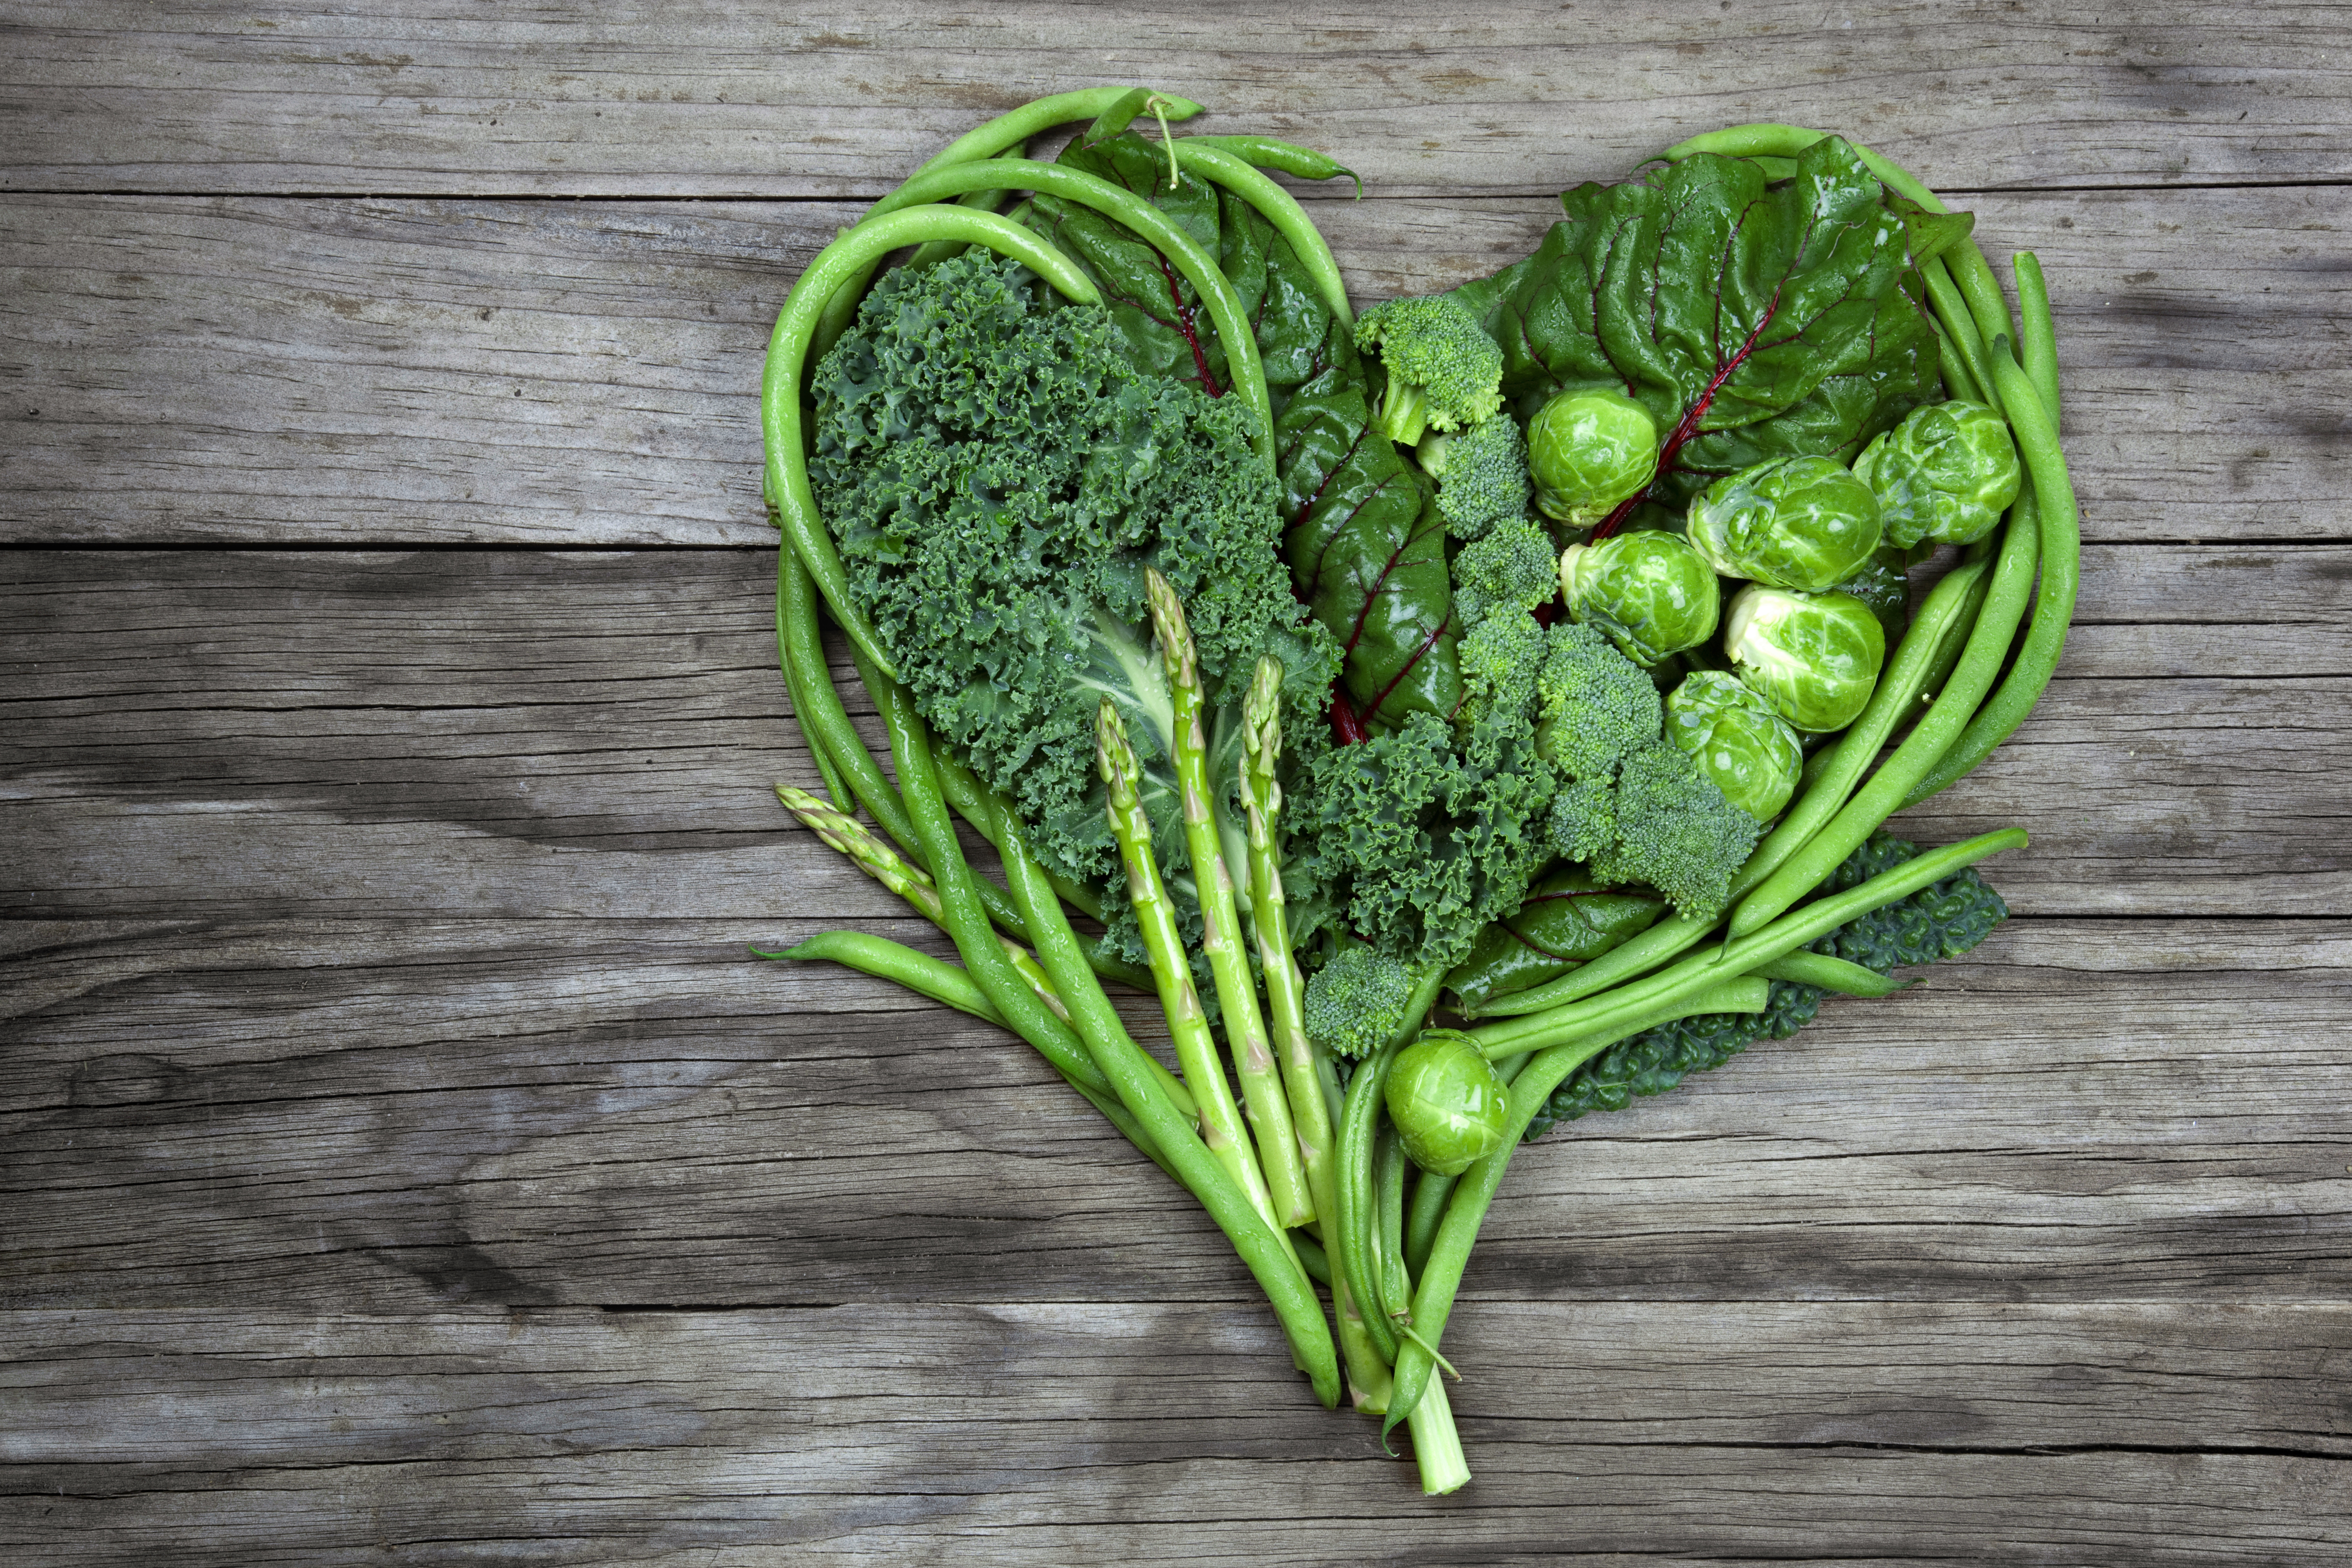 Broccoli, green beans, sprouts and asparagus in the shape of a heart